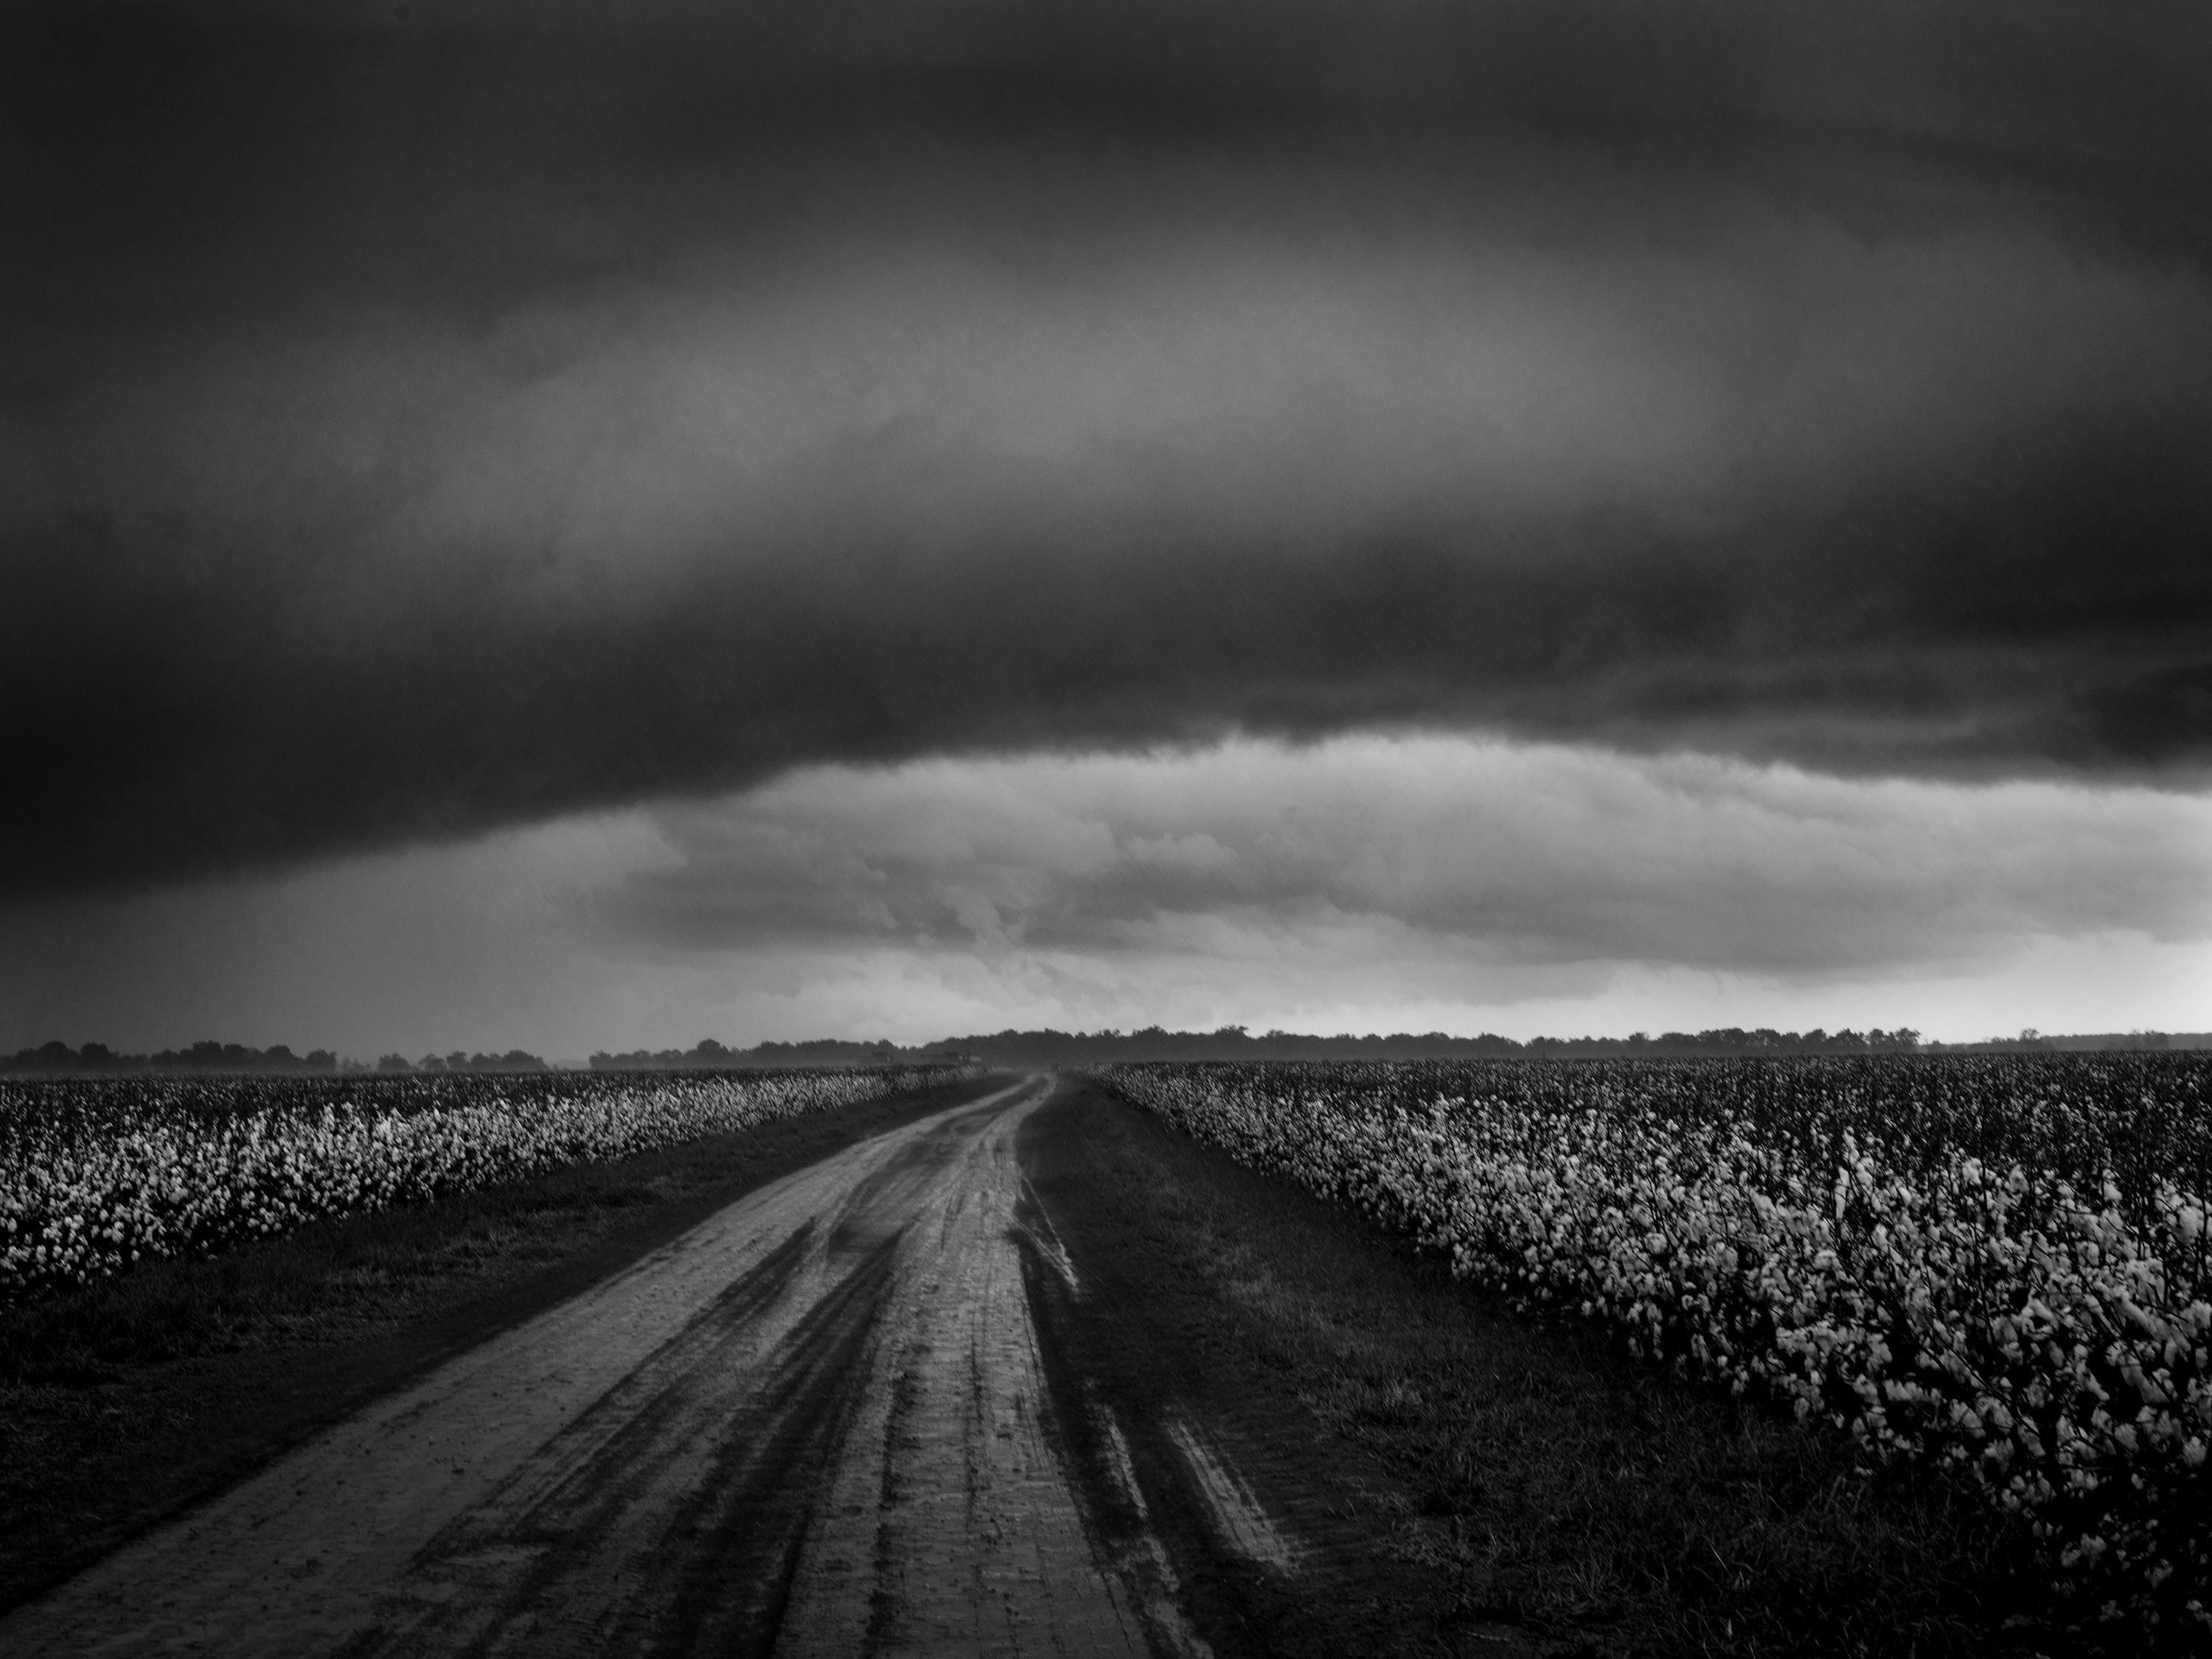 debbie caffery, Stormy Sky Over Cotton Fields